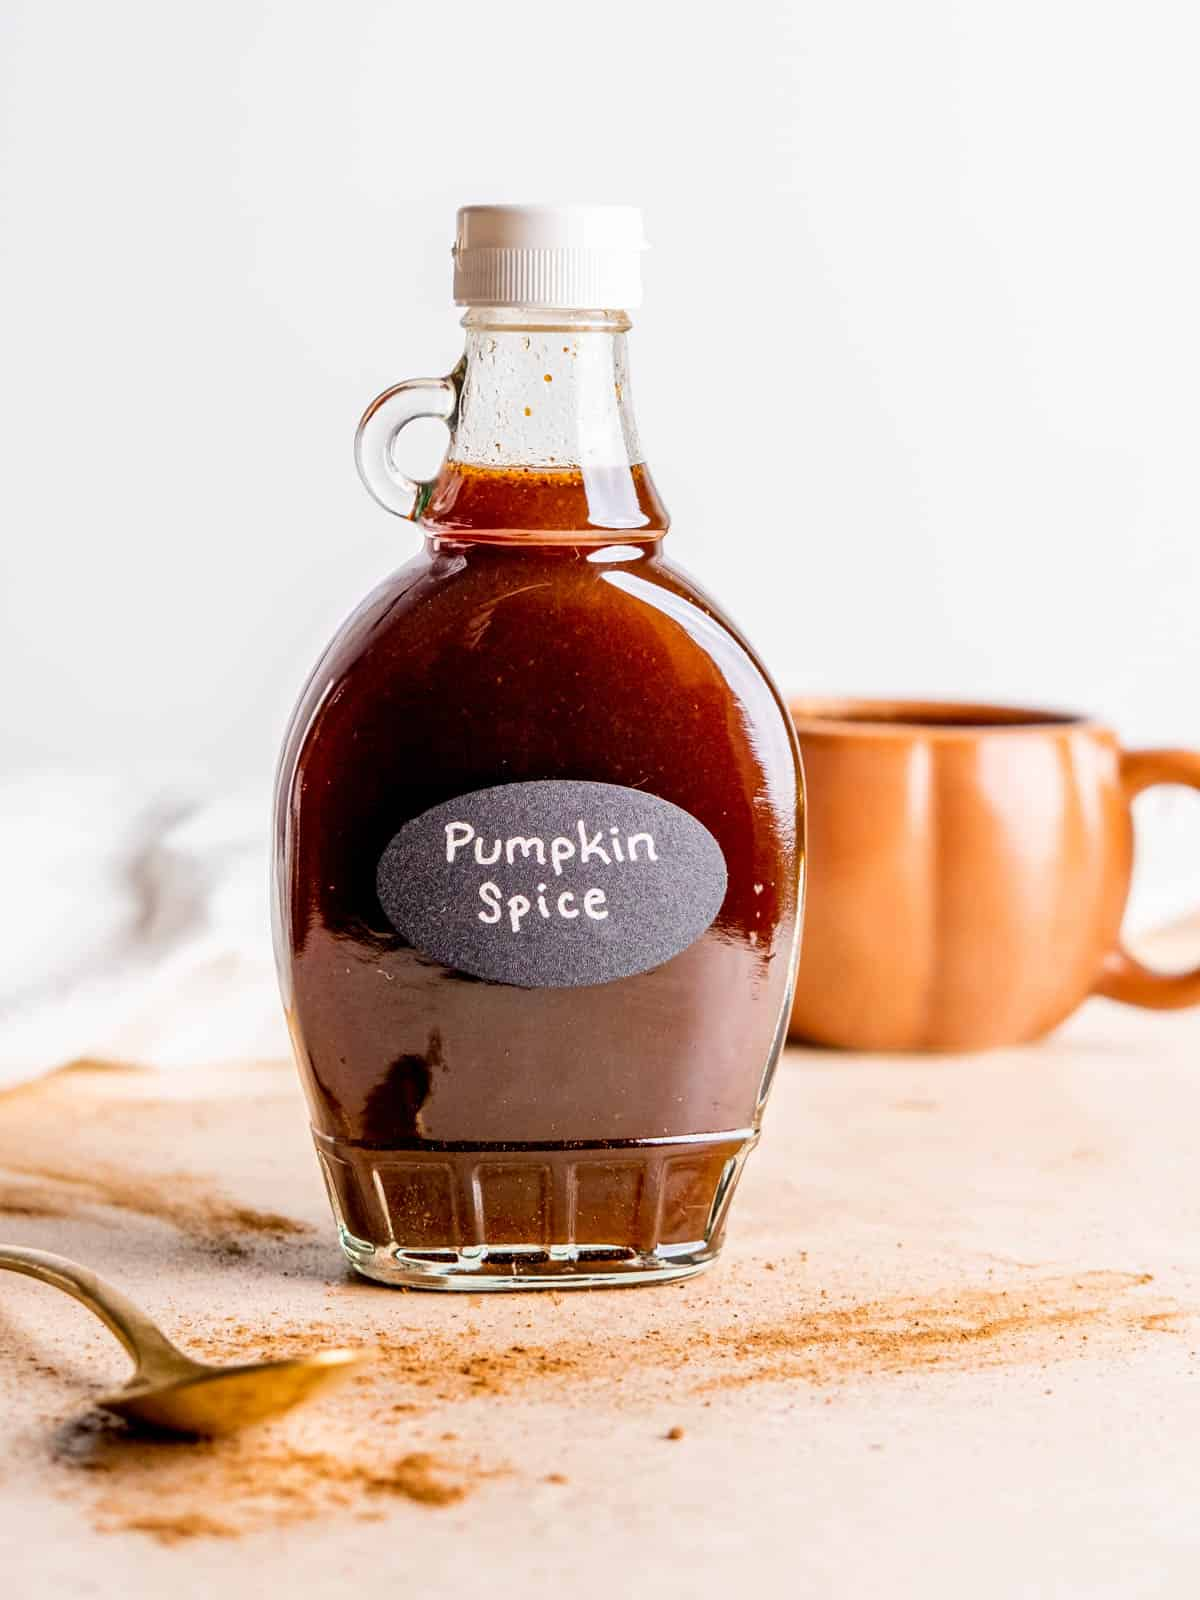 """a syrup bottle filled with pumpkin spice syrup and labeled """"Pumpkin Spice"""""""